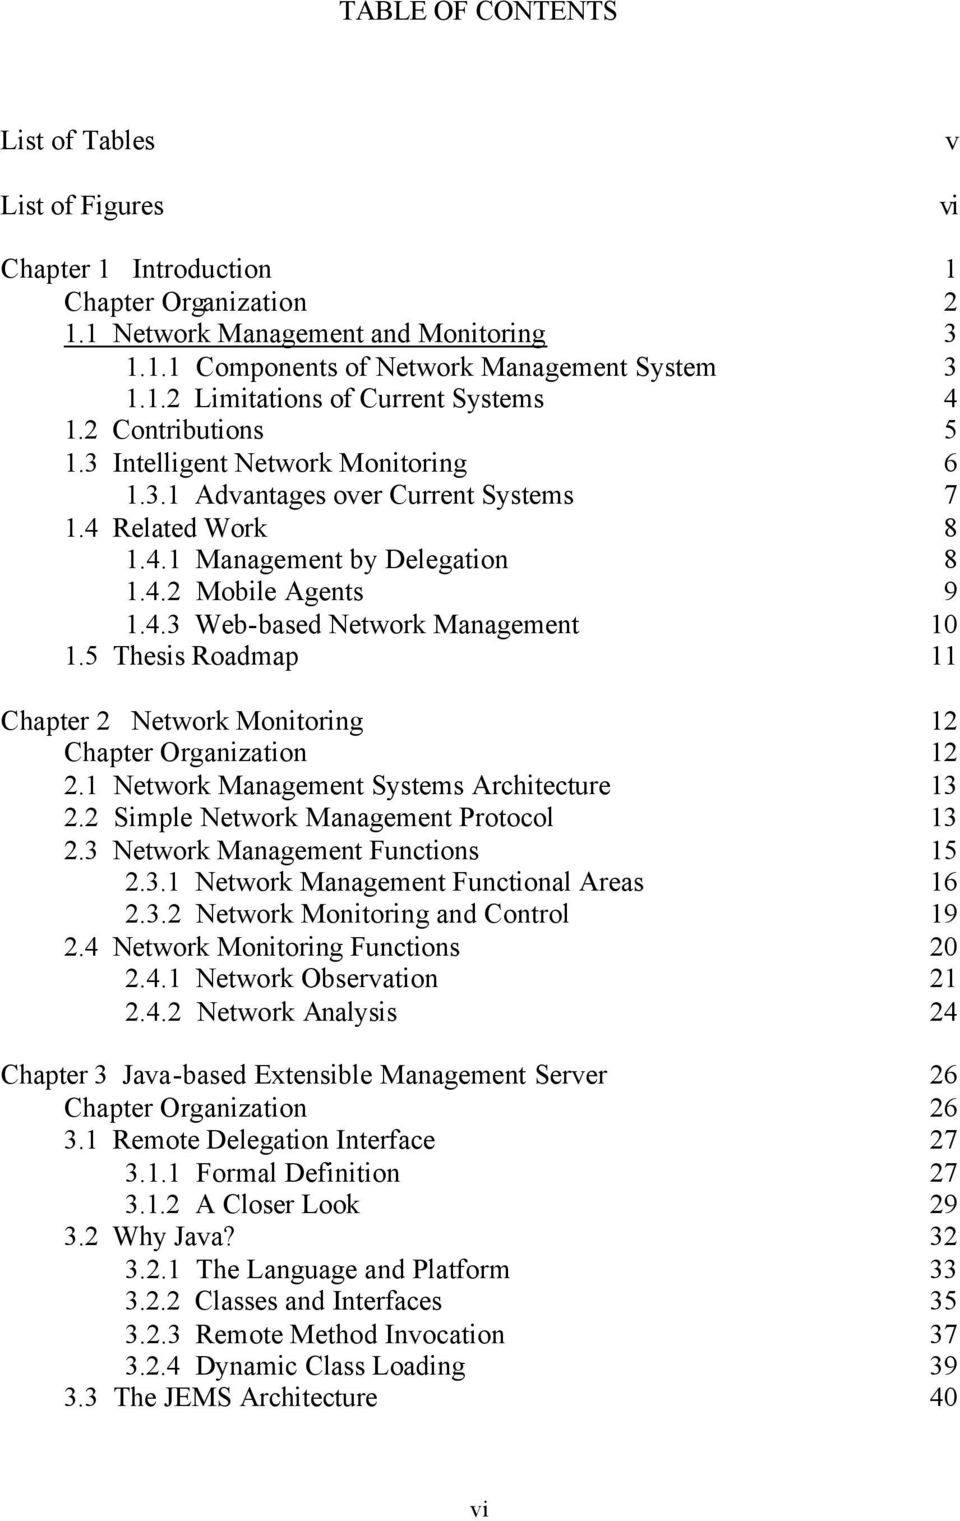 5 Thesis Roadmap 11 Chapter 2 Network Monitoring 12 Chapter Organization 12 2.1 Network Management Systems Architecture 13 2.2 Simple Network Management Protocol 13 2.